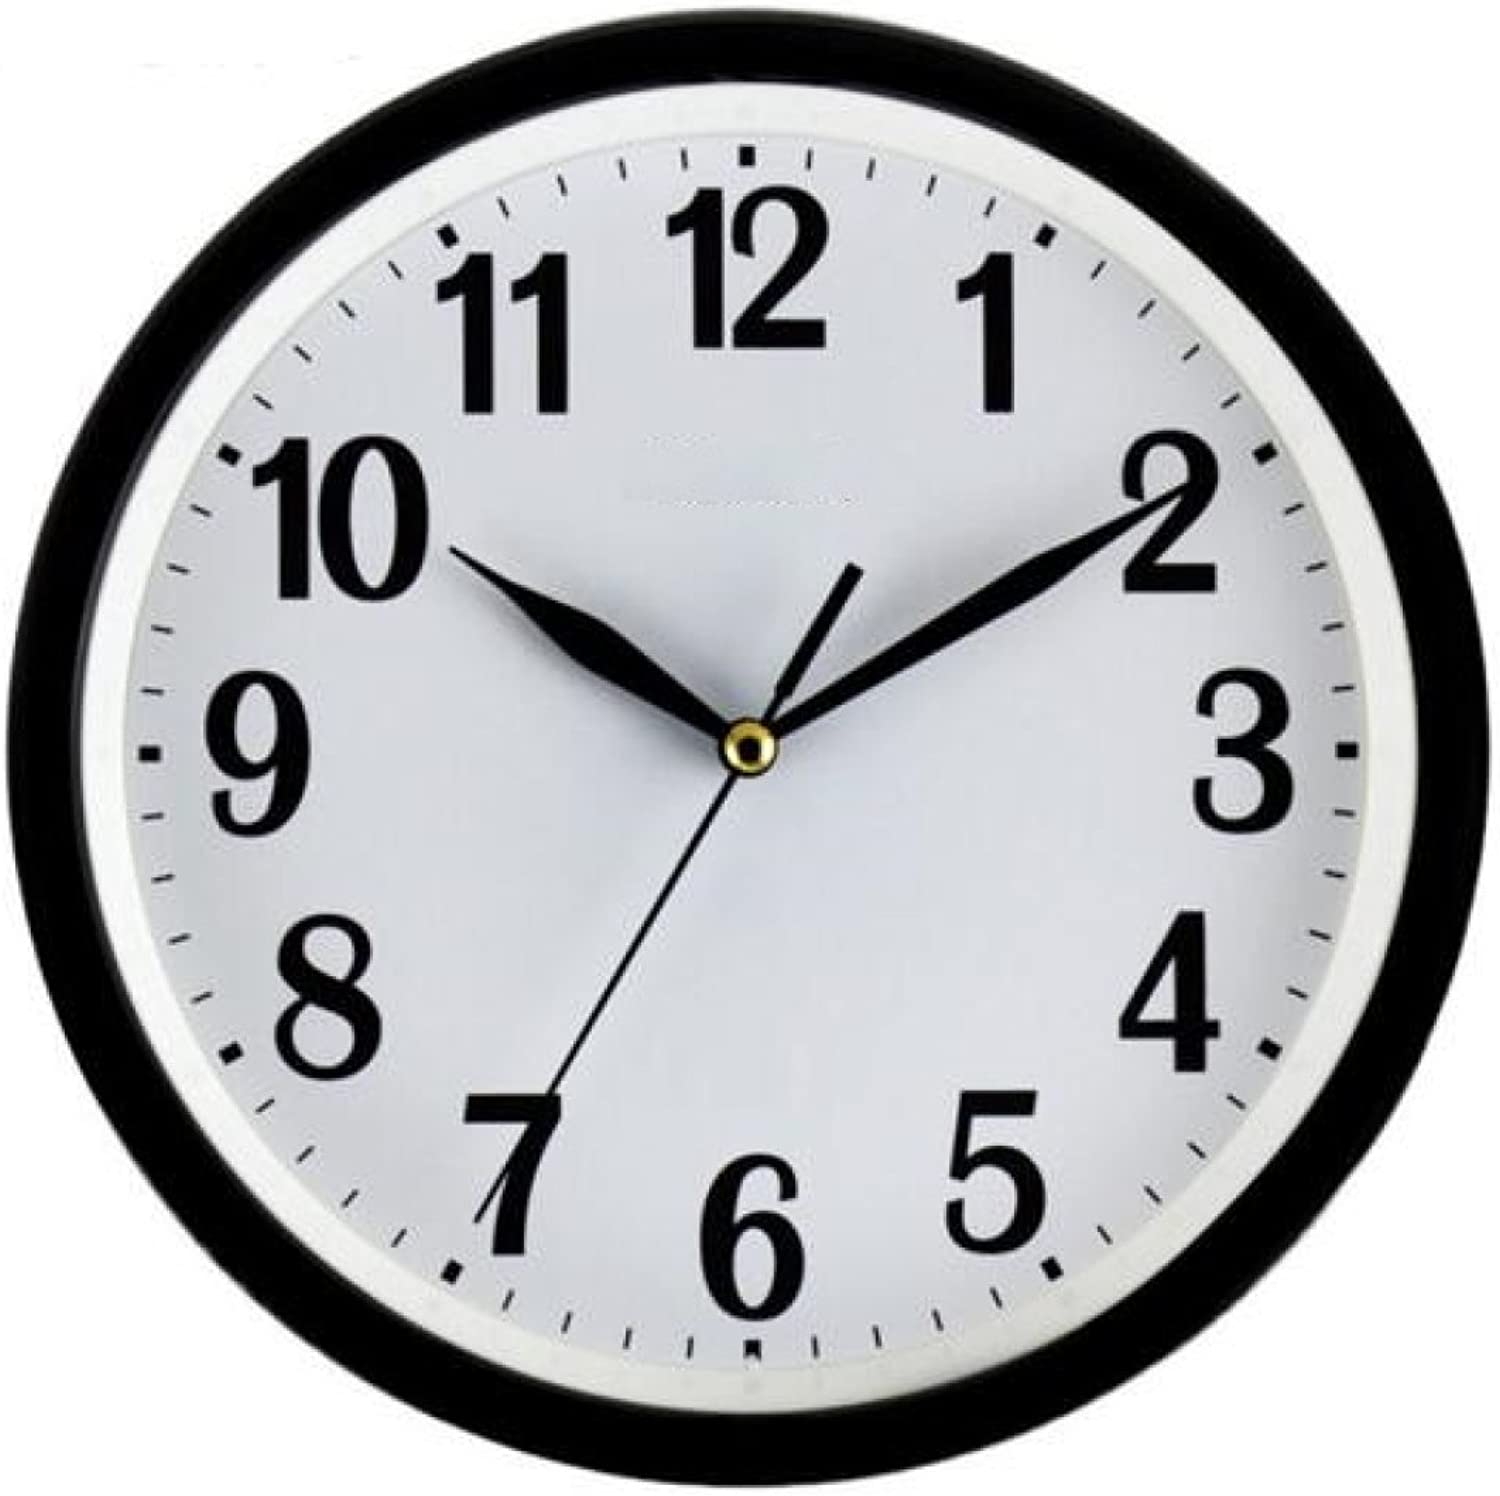 Quartz Clock Modern Simple Clock 12 Inch Round Bedroom Clock Creative Clock Living Room Clock ,Black